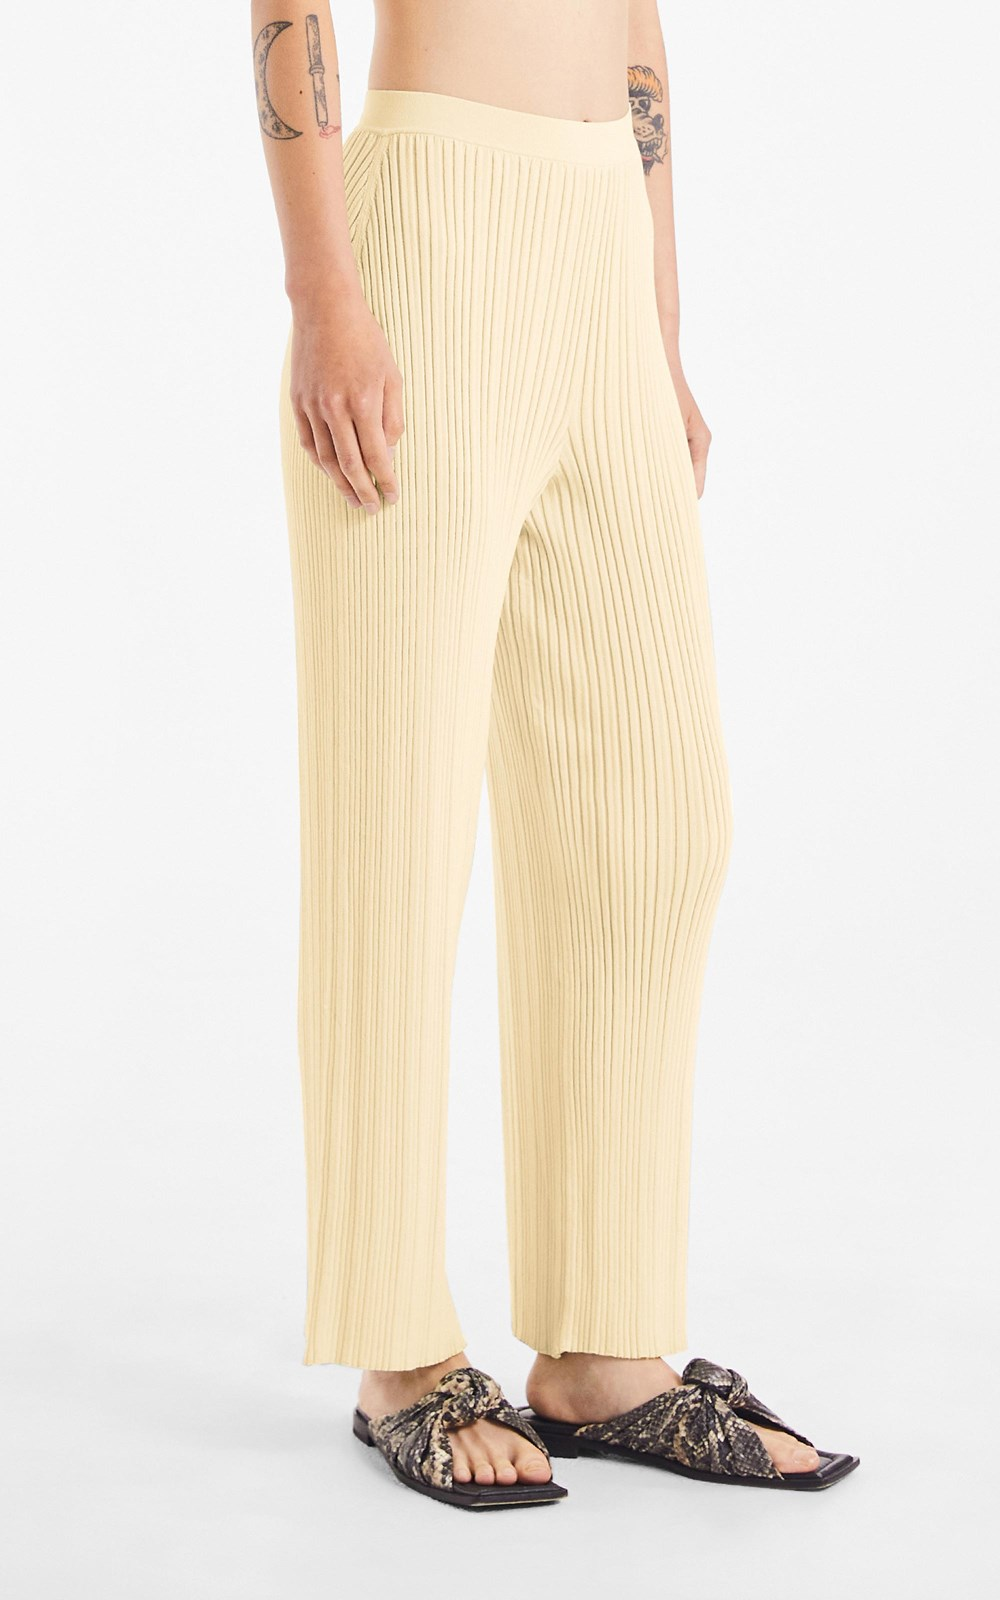 Knitwear | FLOAT RIB PANT